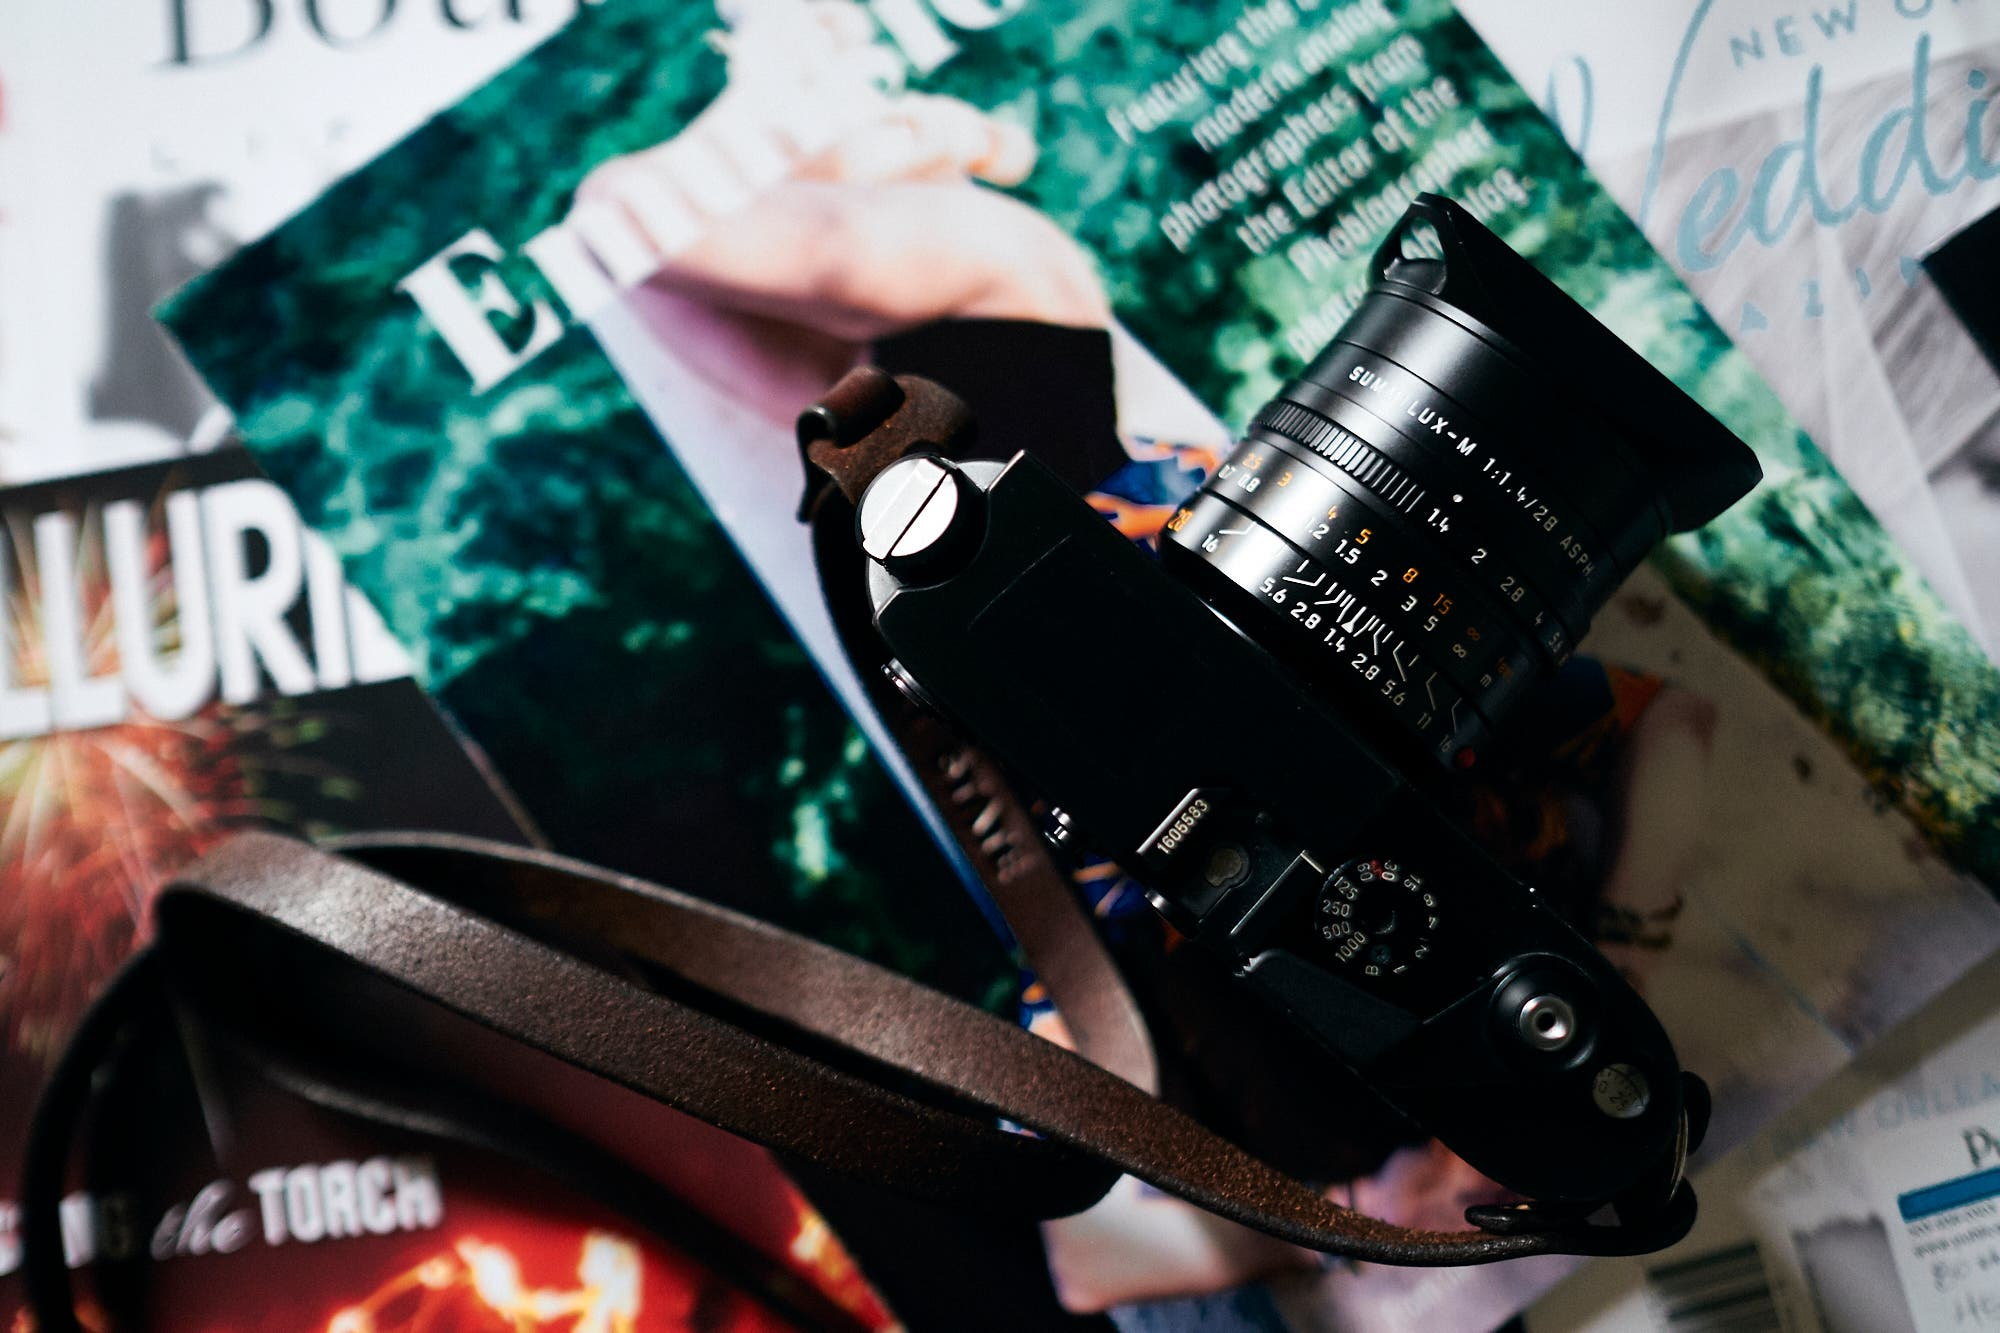 Lens Review: Leica 28mm f1 4 Summilux (M Mount)